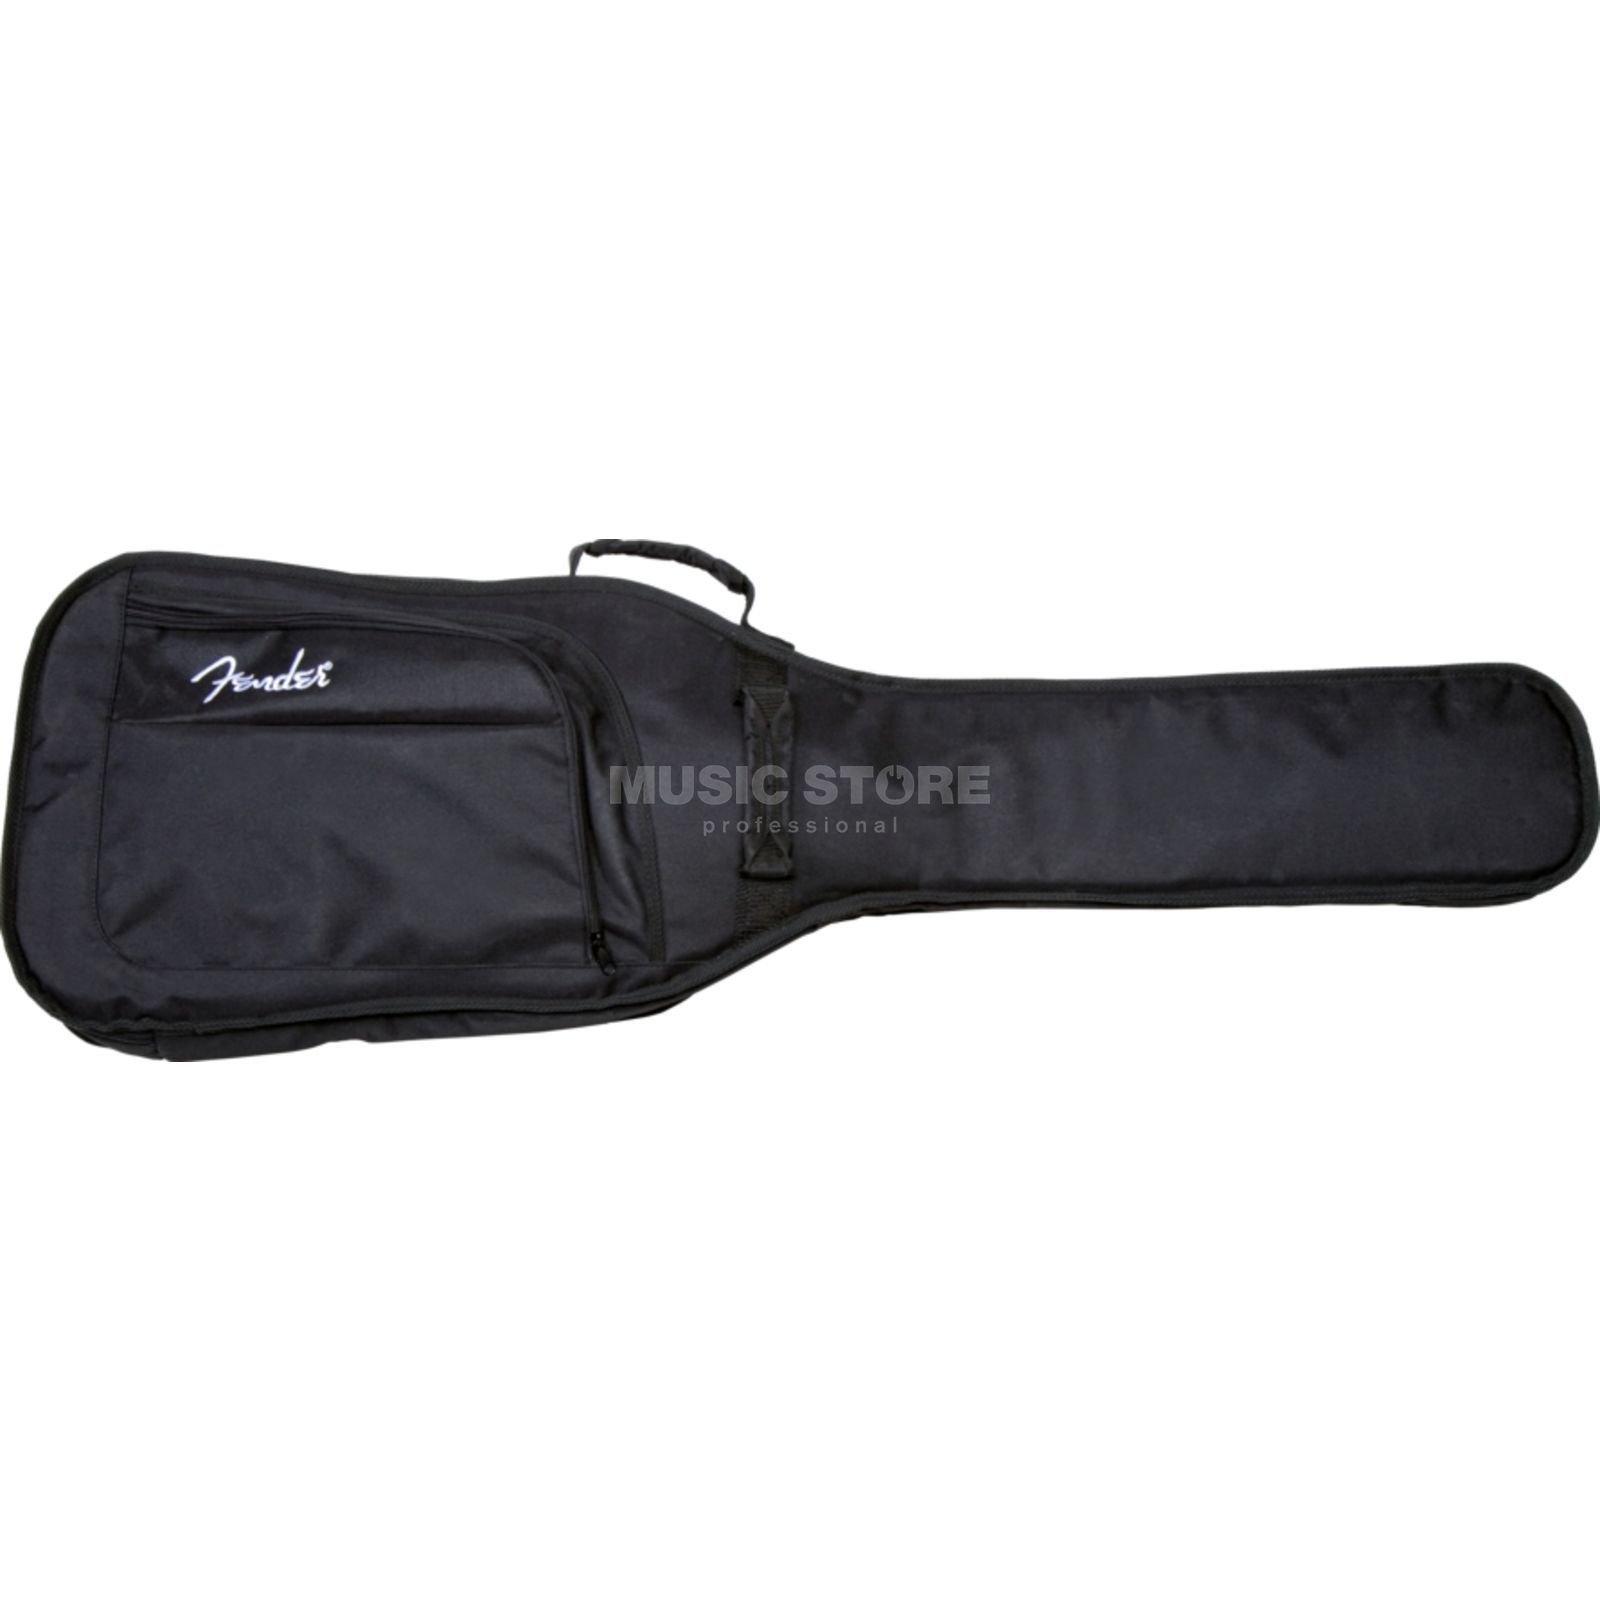 Fender Bag Urban Short Scale E-Bass Black Изображение товара